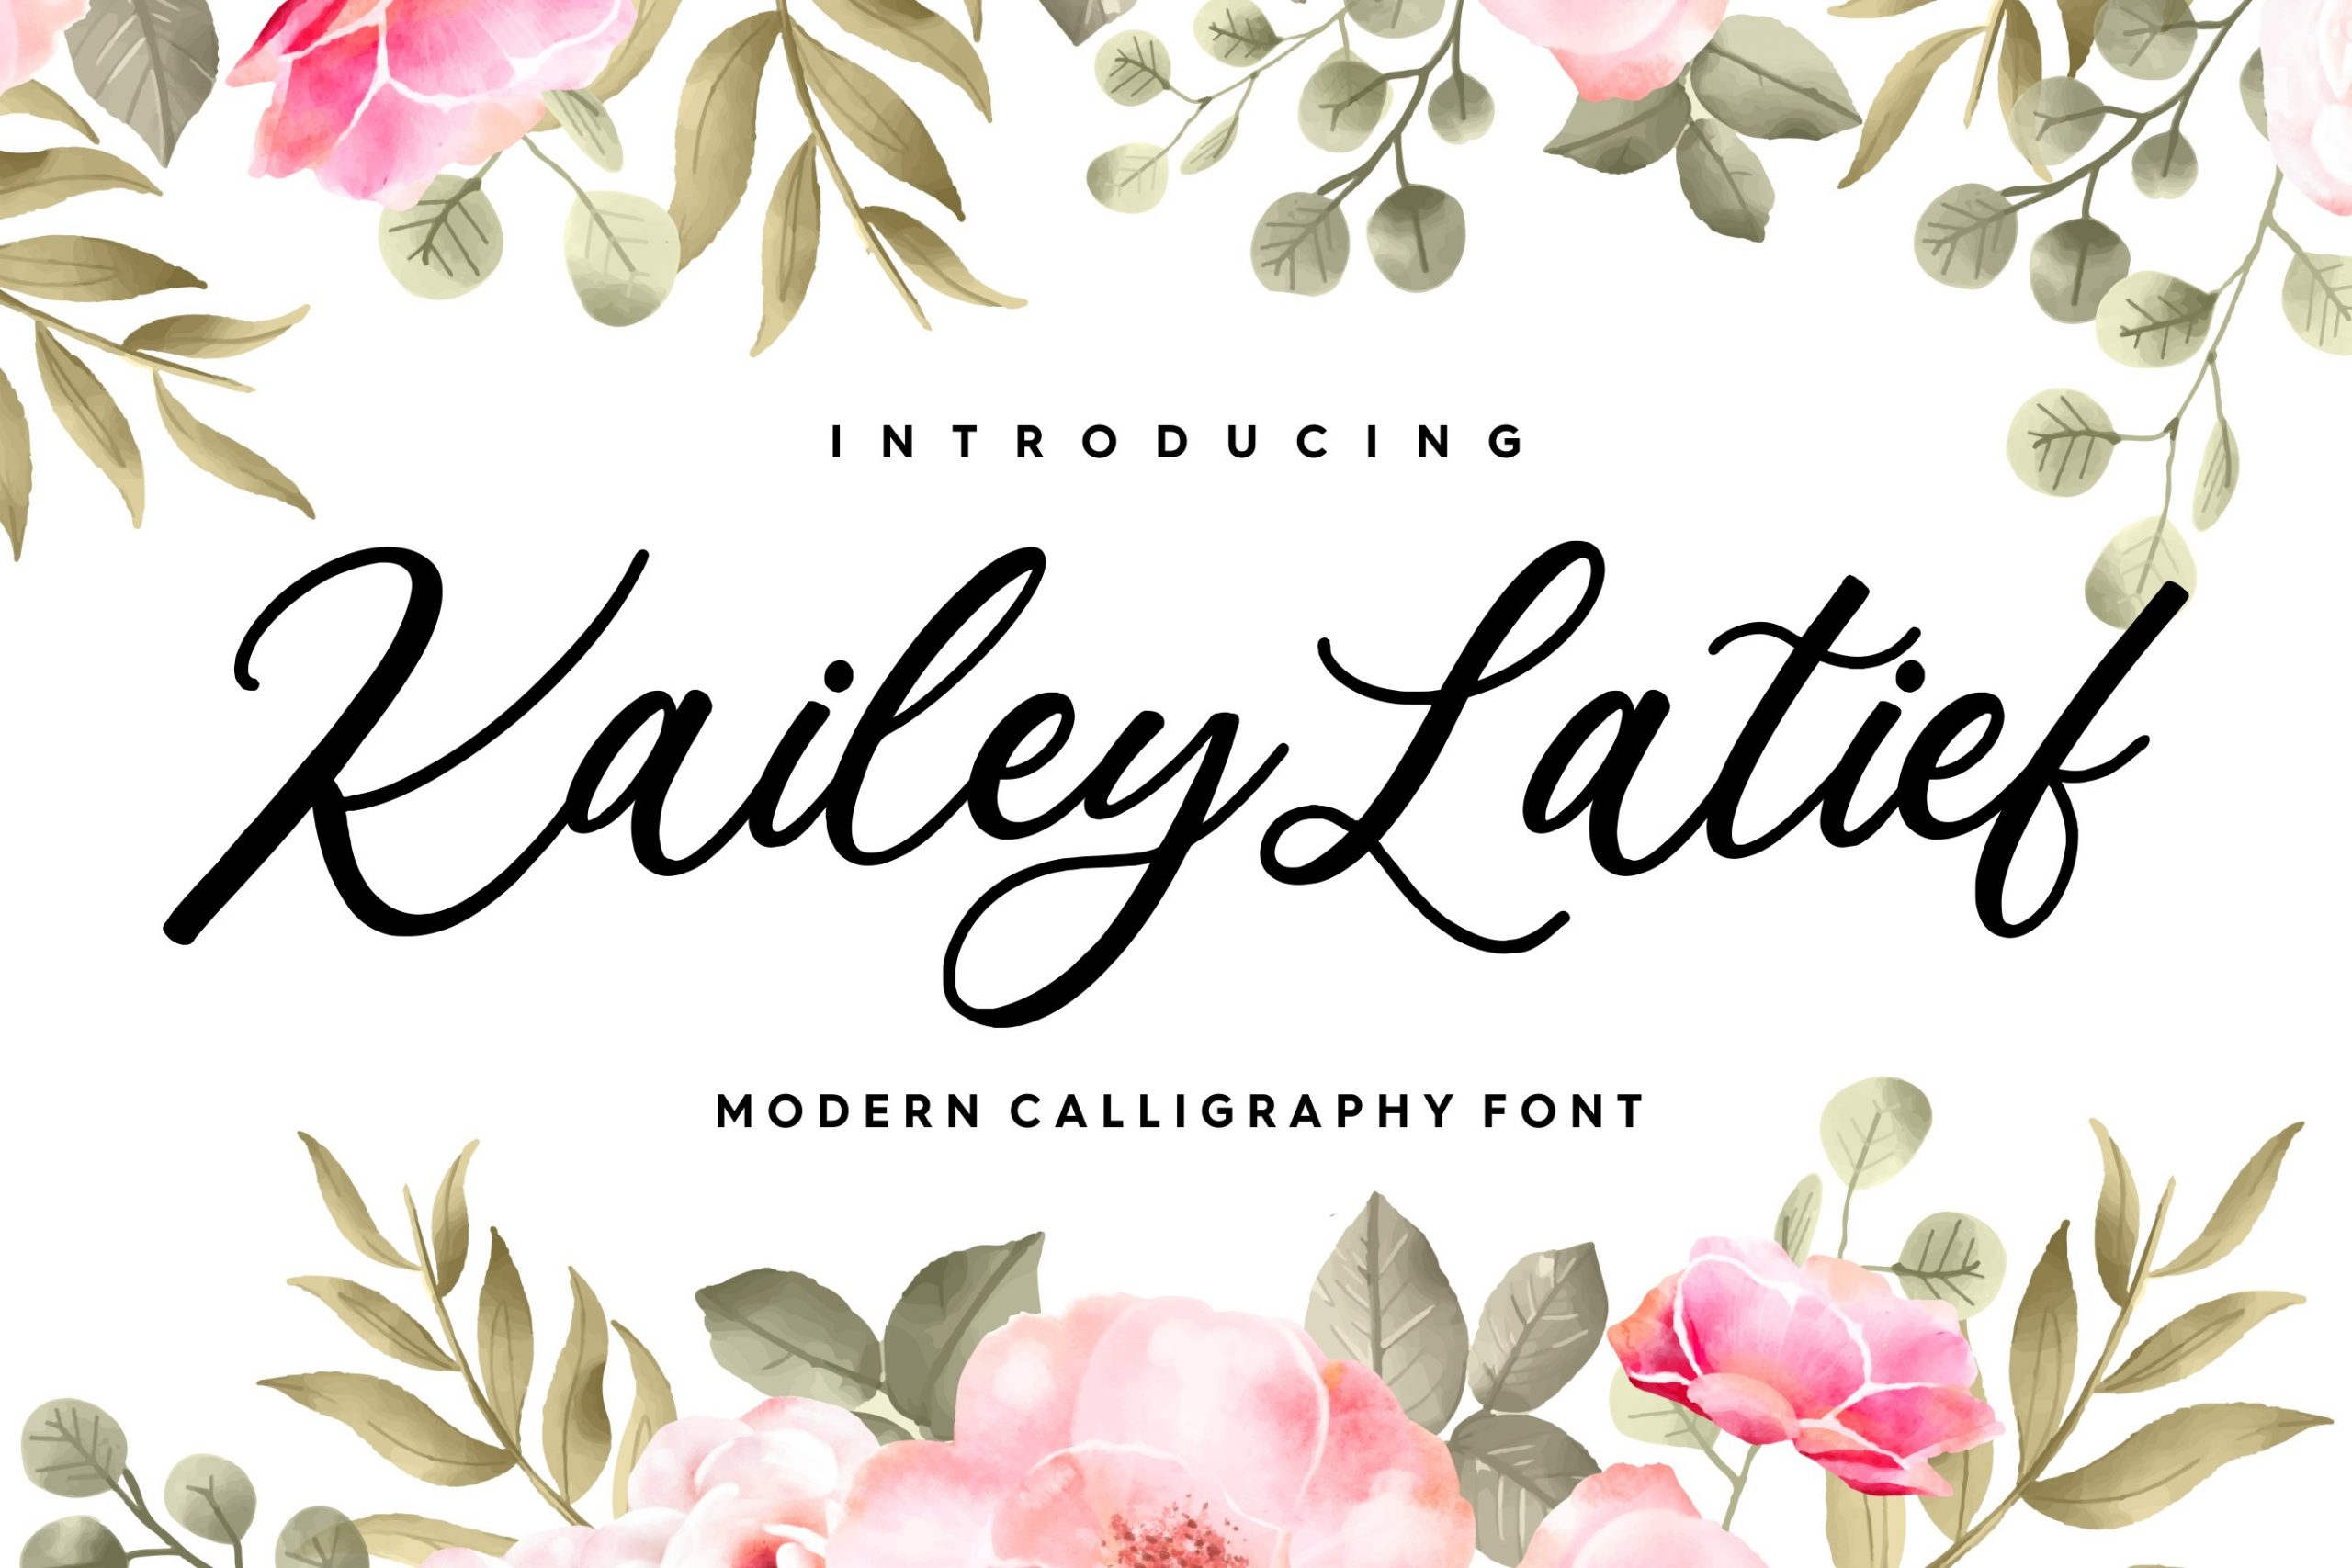 Kailey-Latief-Font